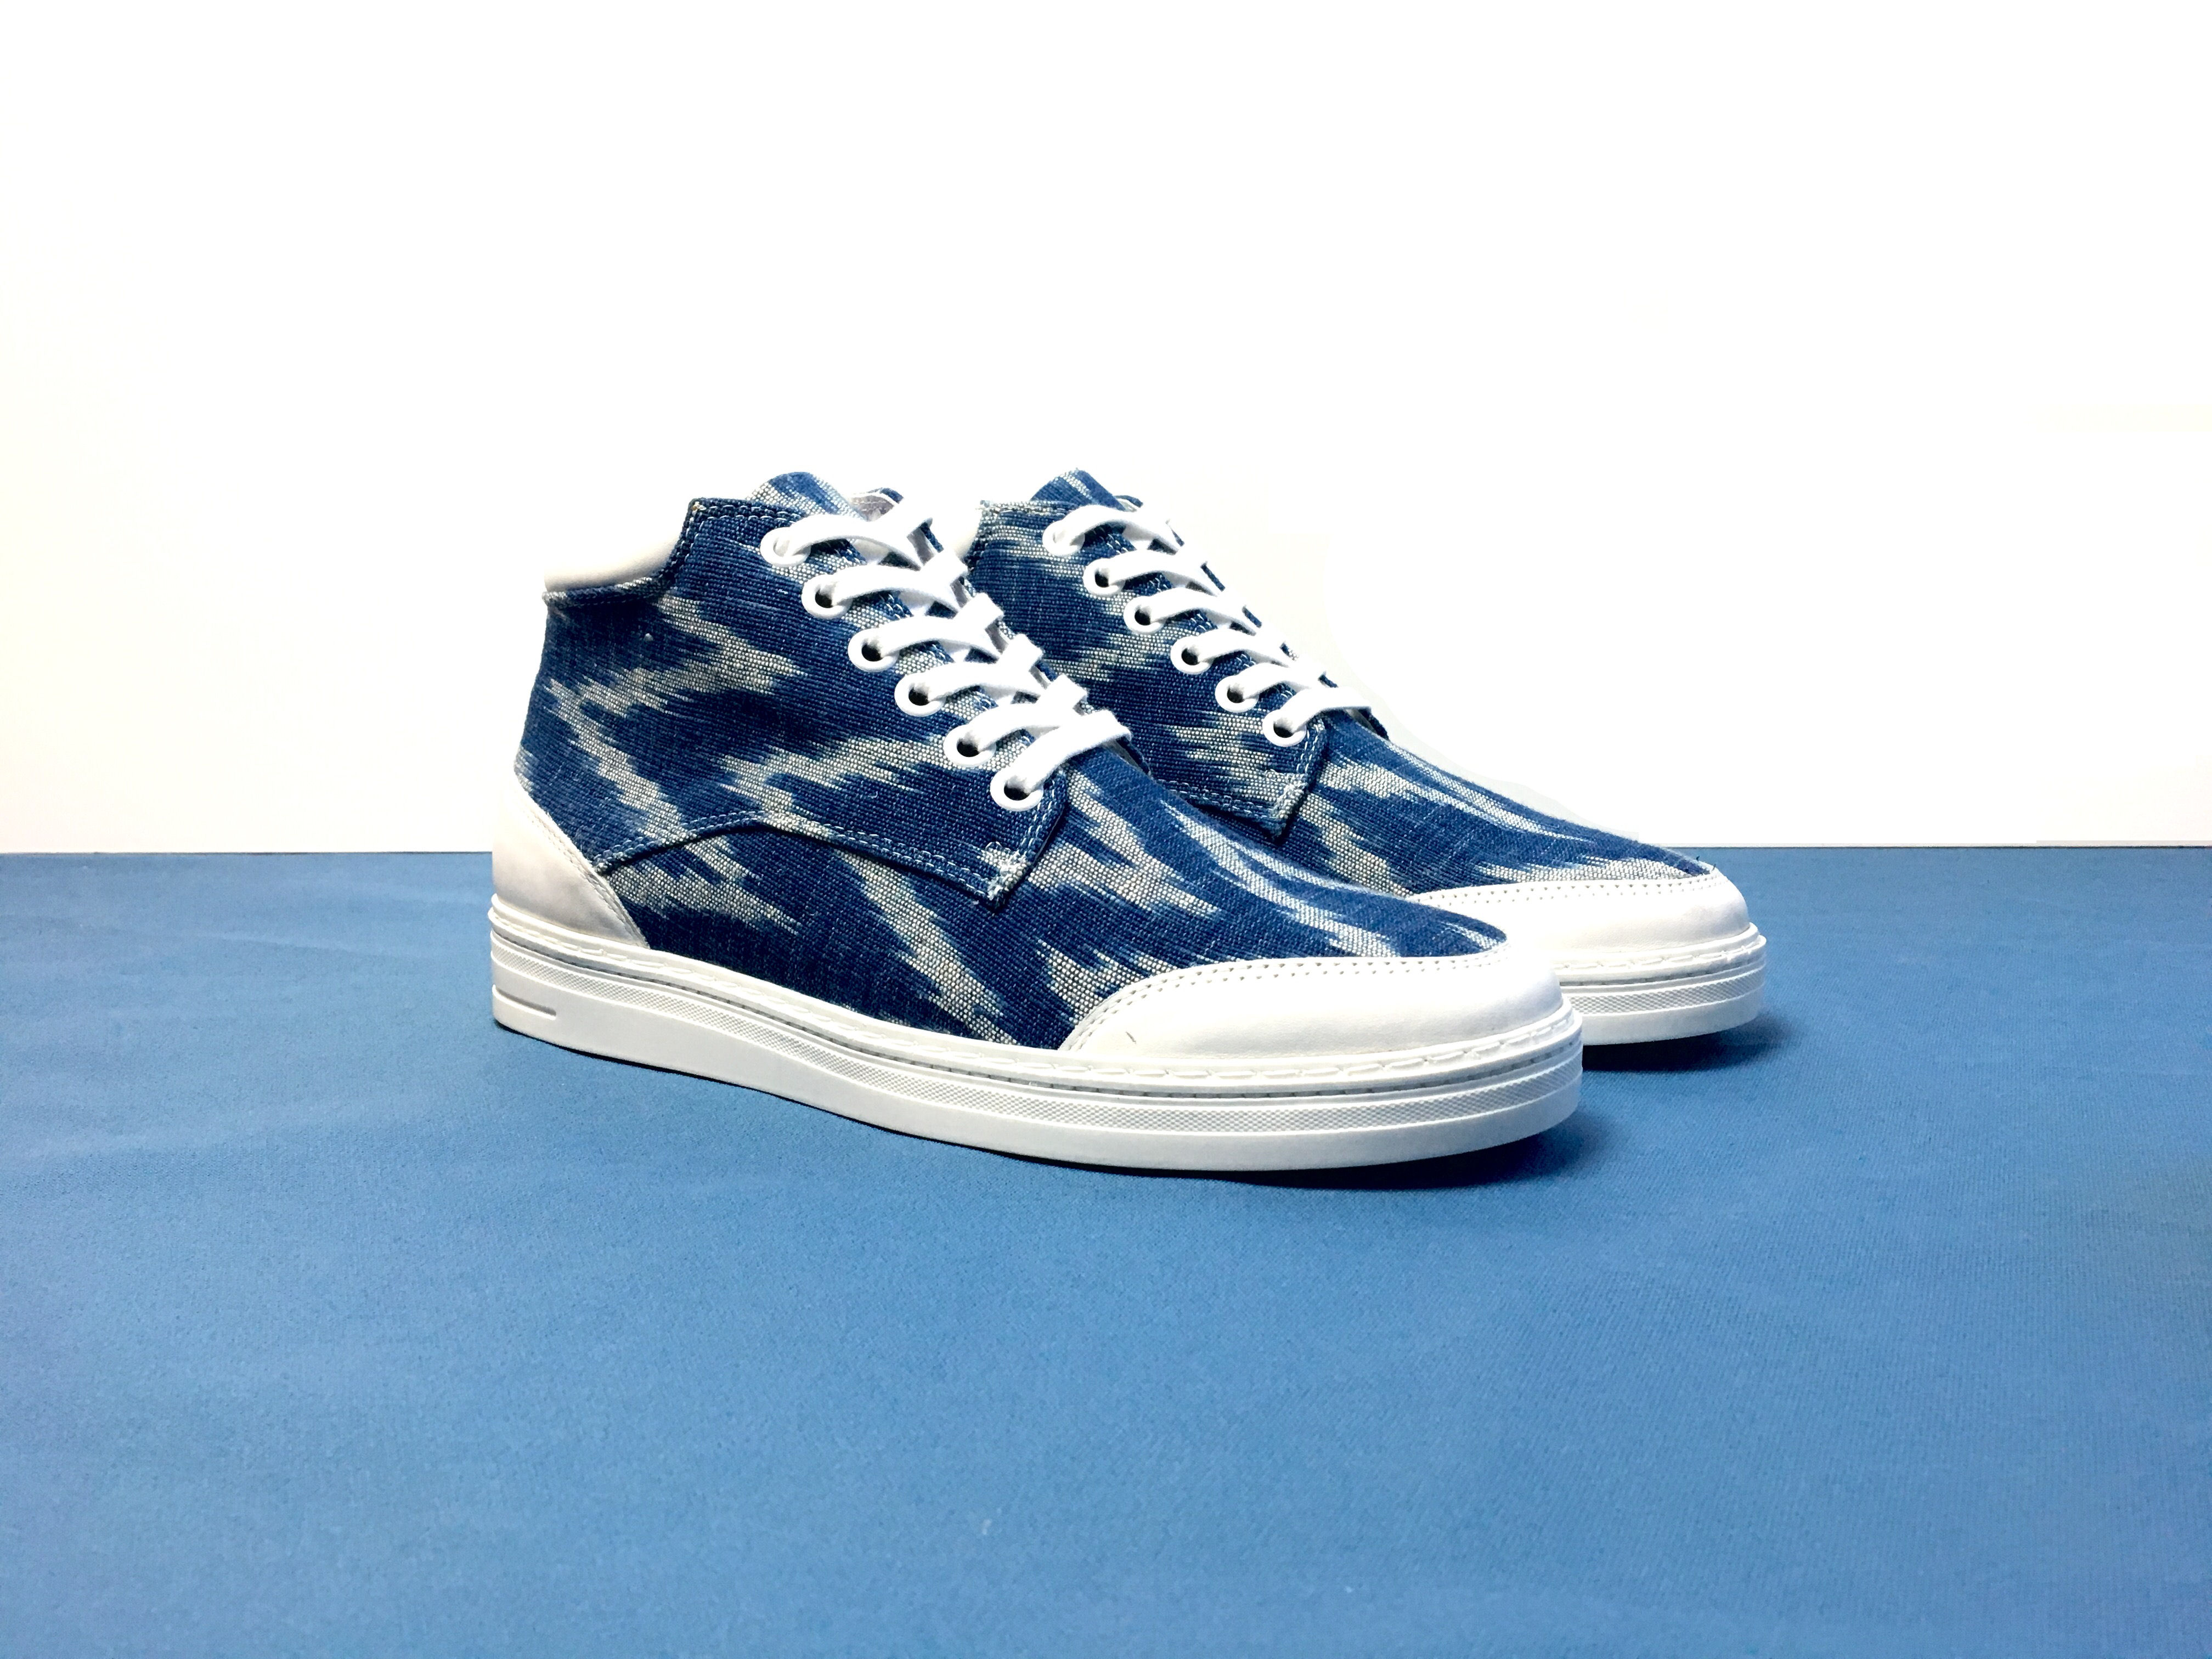 Blue Days Footwear x Indigo People (3)